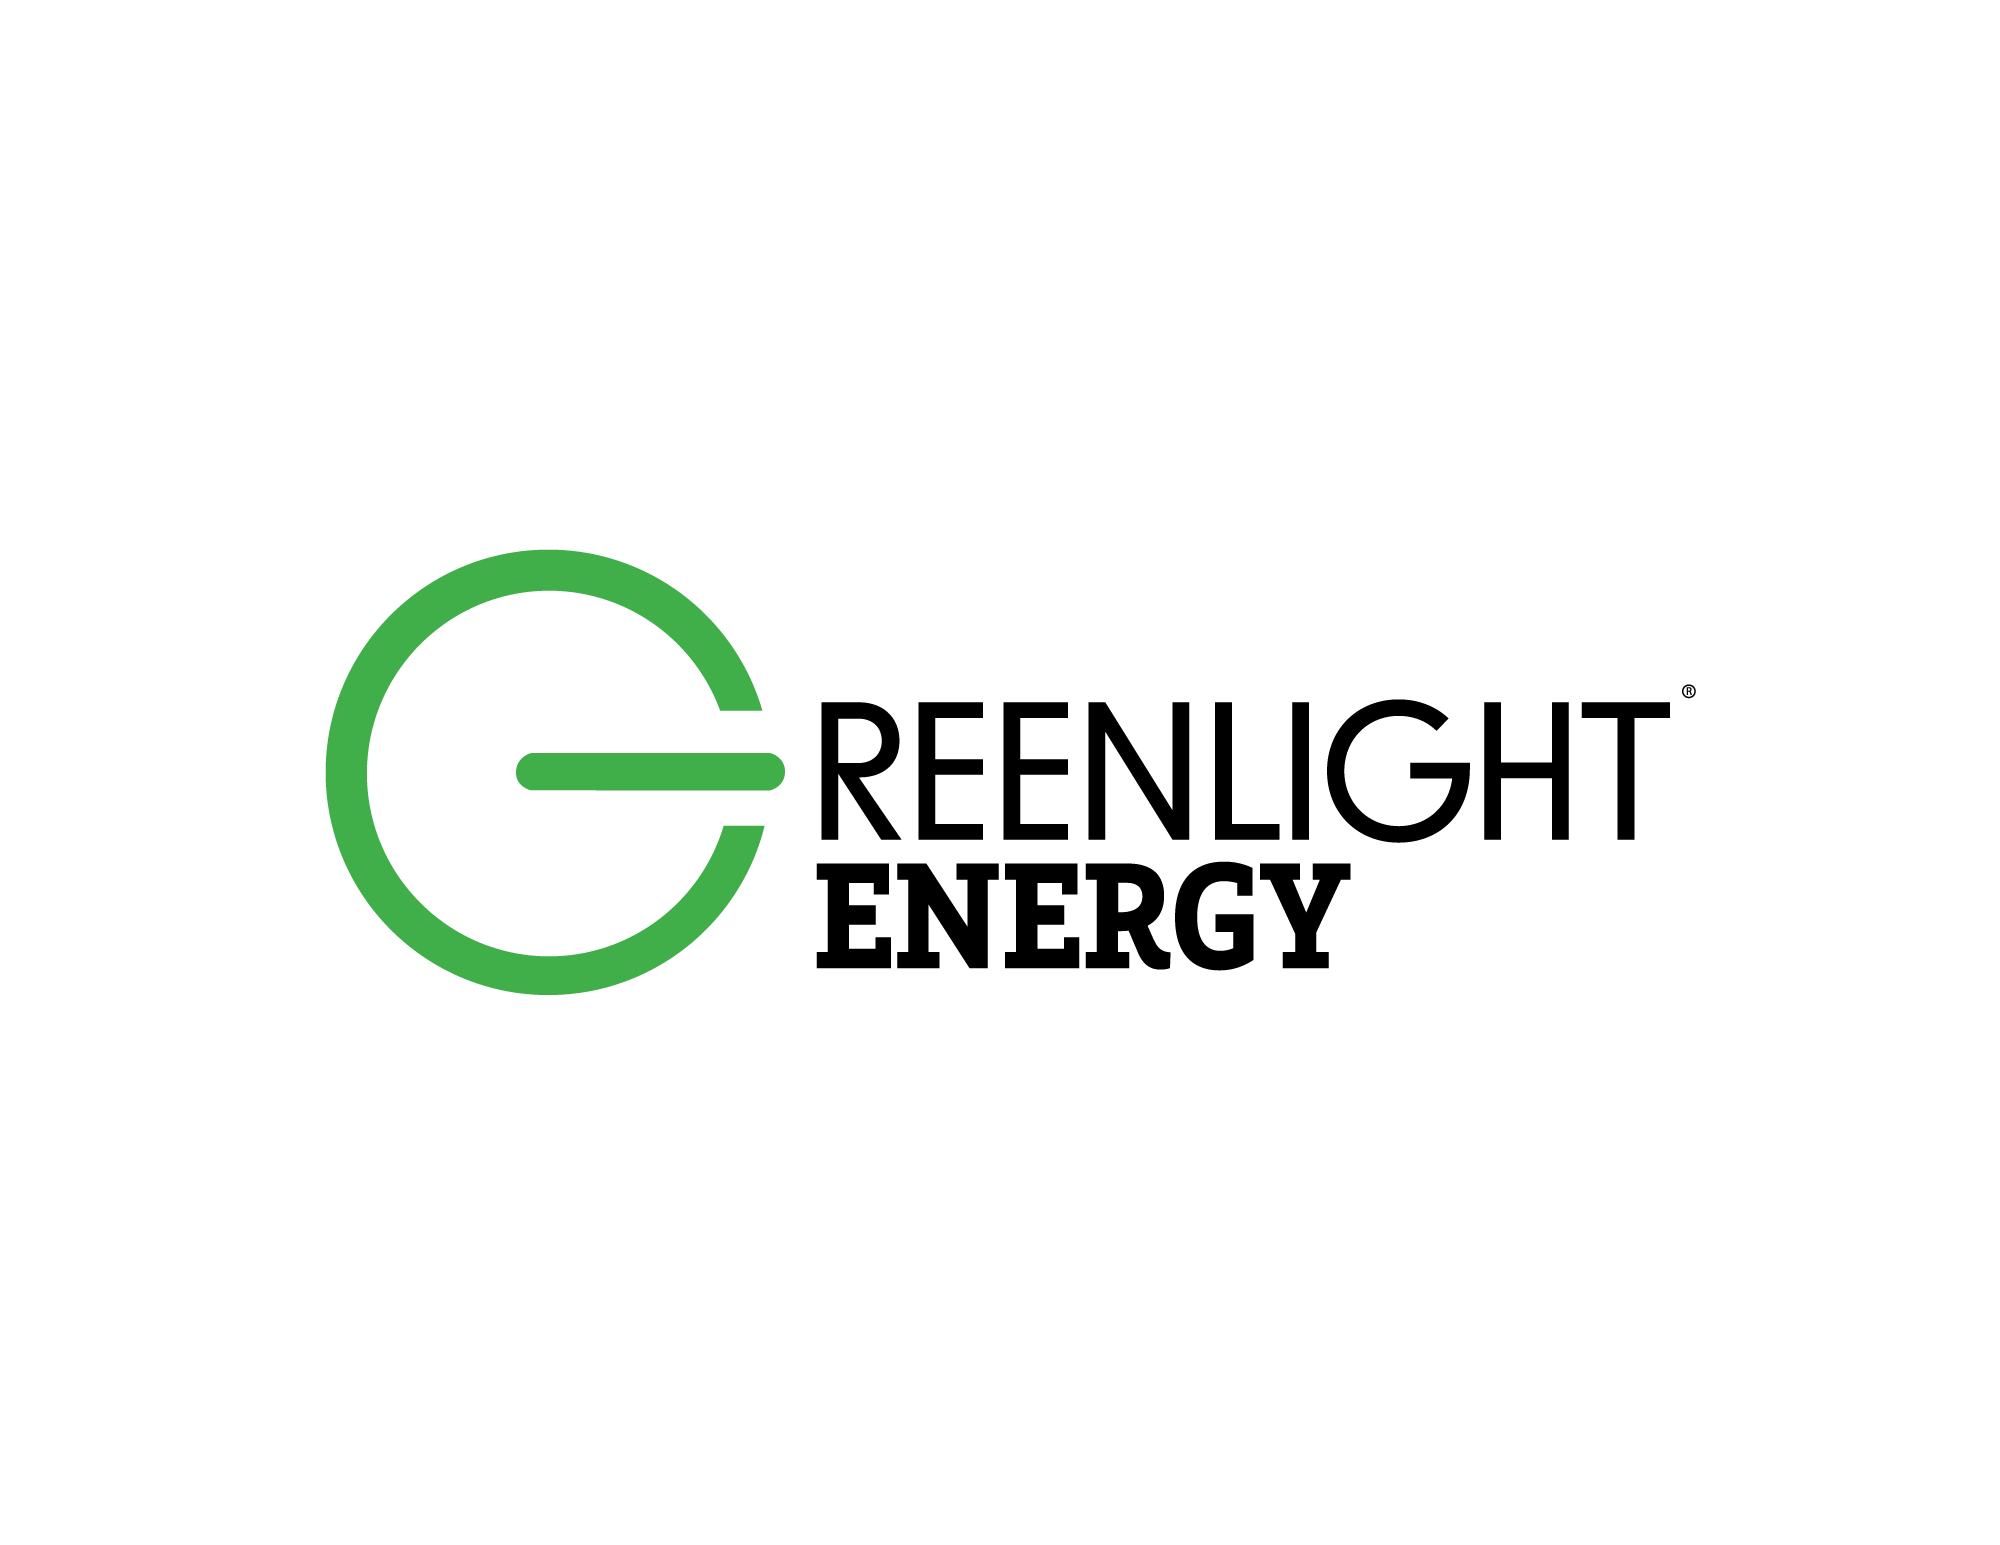 Terms & Conditions - Greenlight Energy